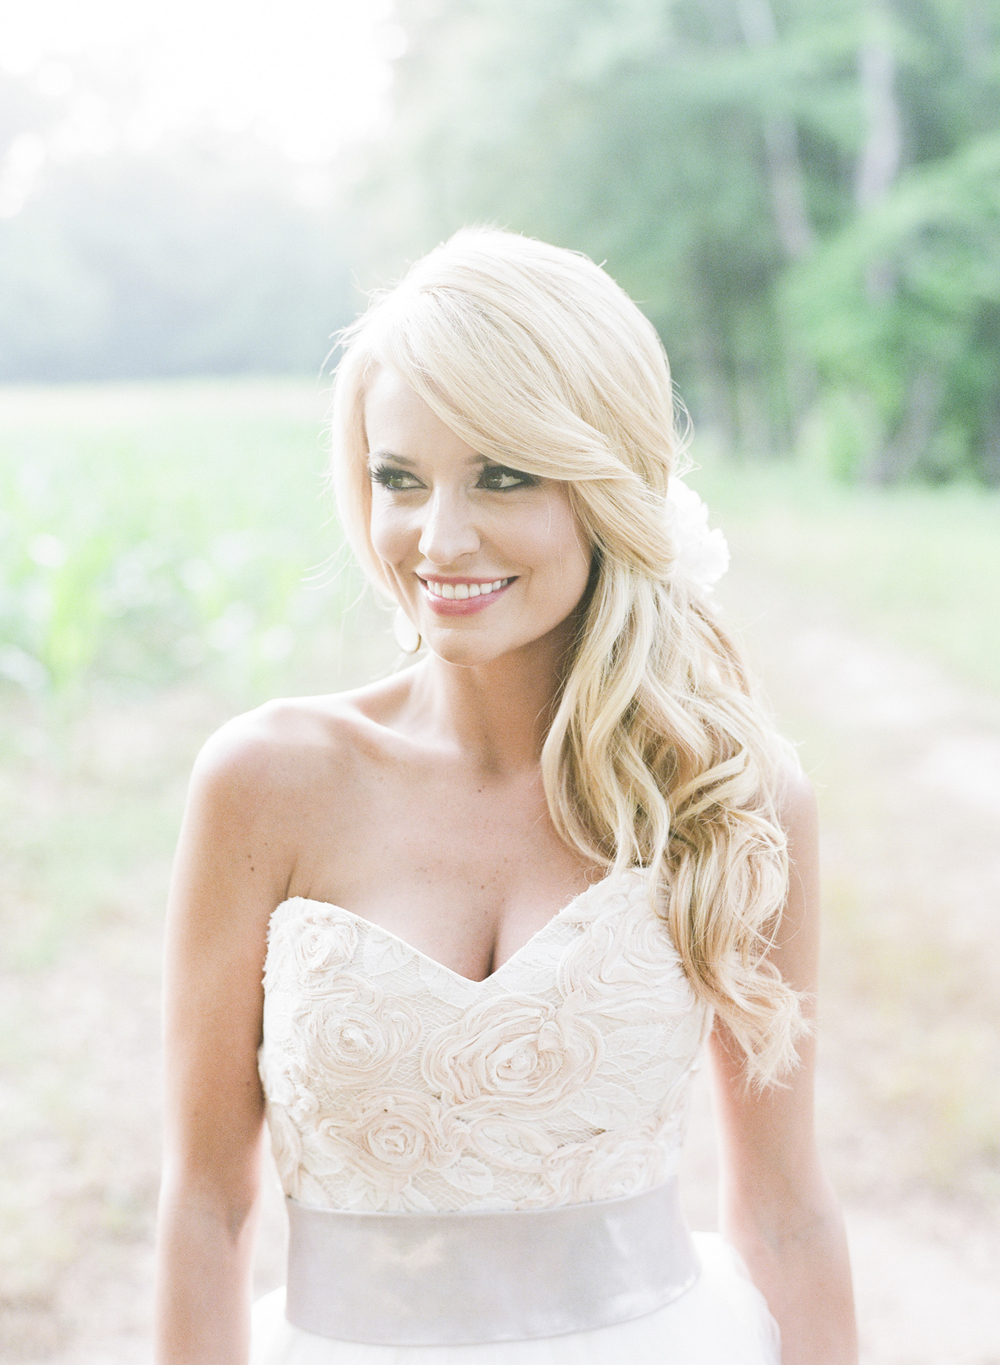 south_carolina_farm_wedding_rustic_chic_surprise_secret_luxe_wedding_bachelorette_emily_maynard_real_weddings-2.jpg